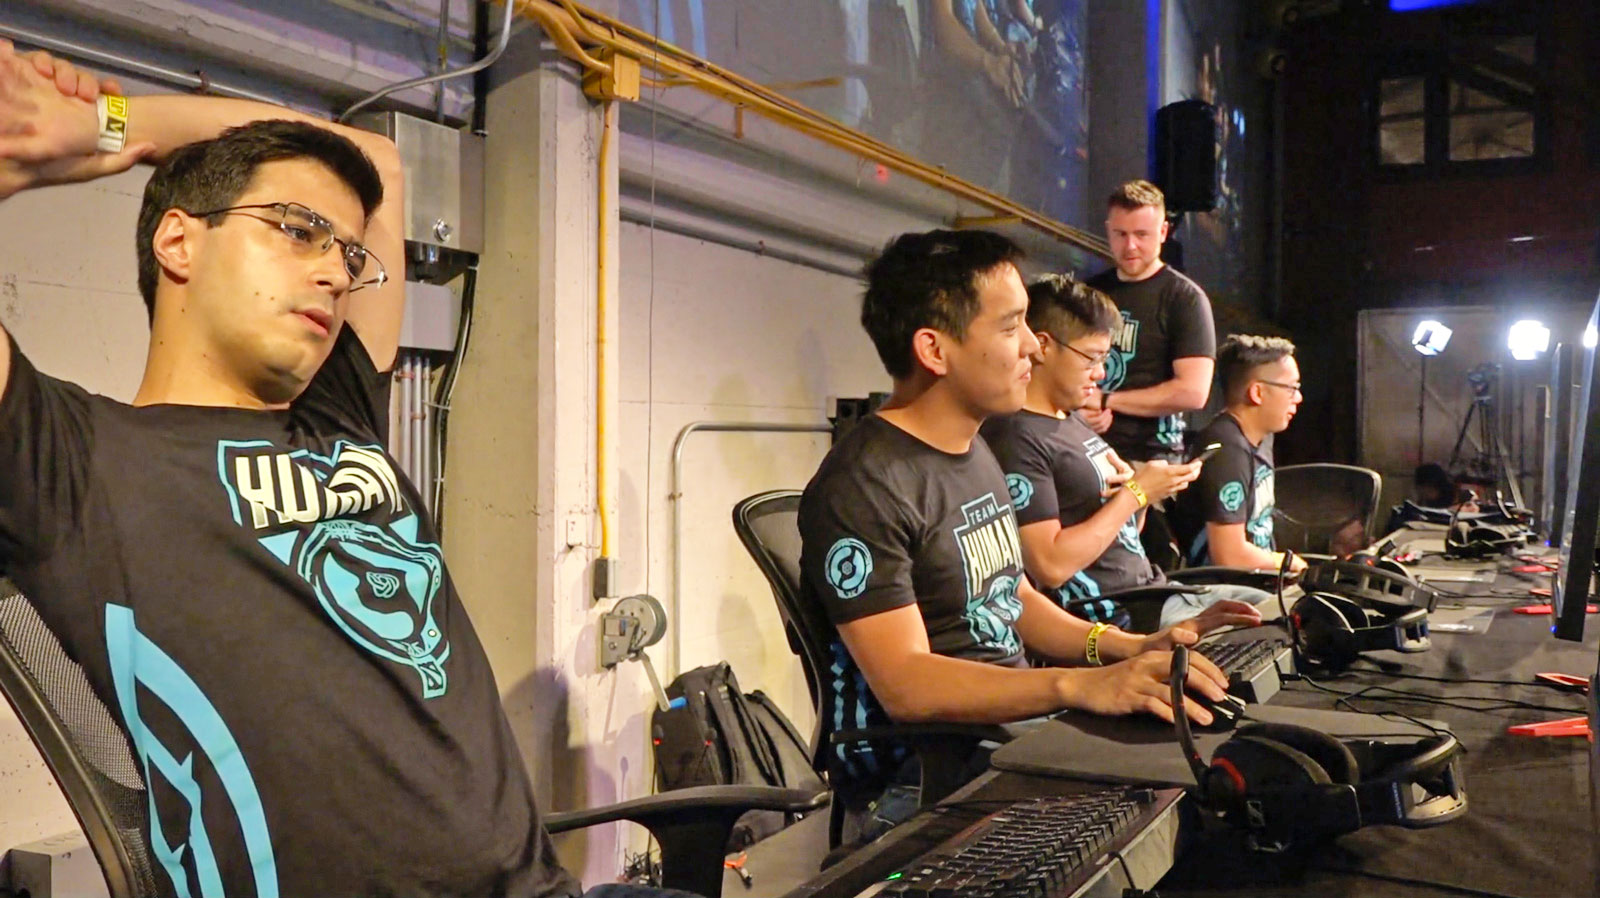 Dota 2' veterans steamrolled by AI team in exhibition match